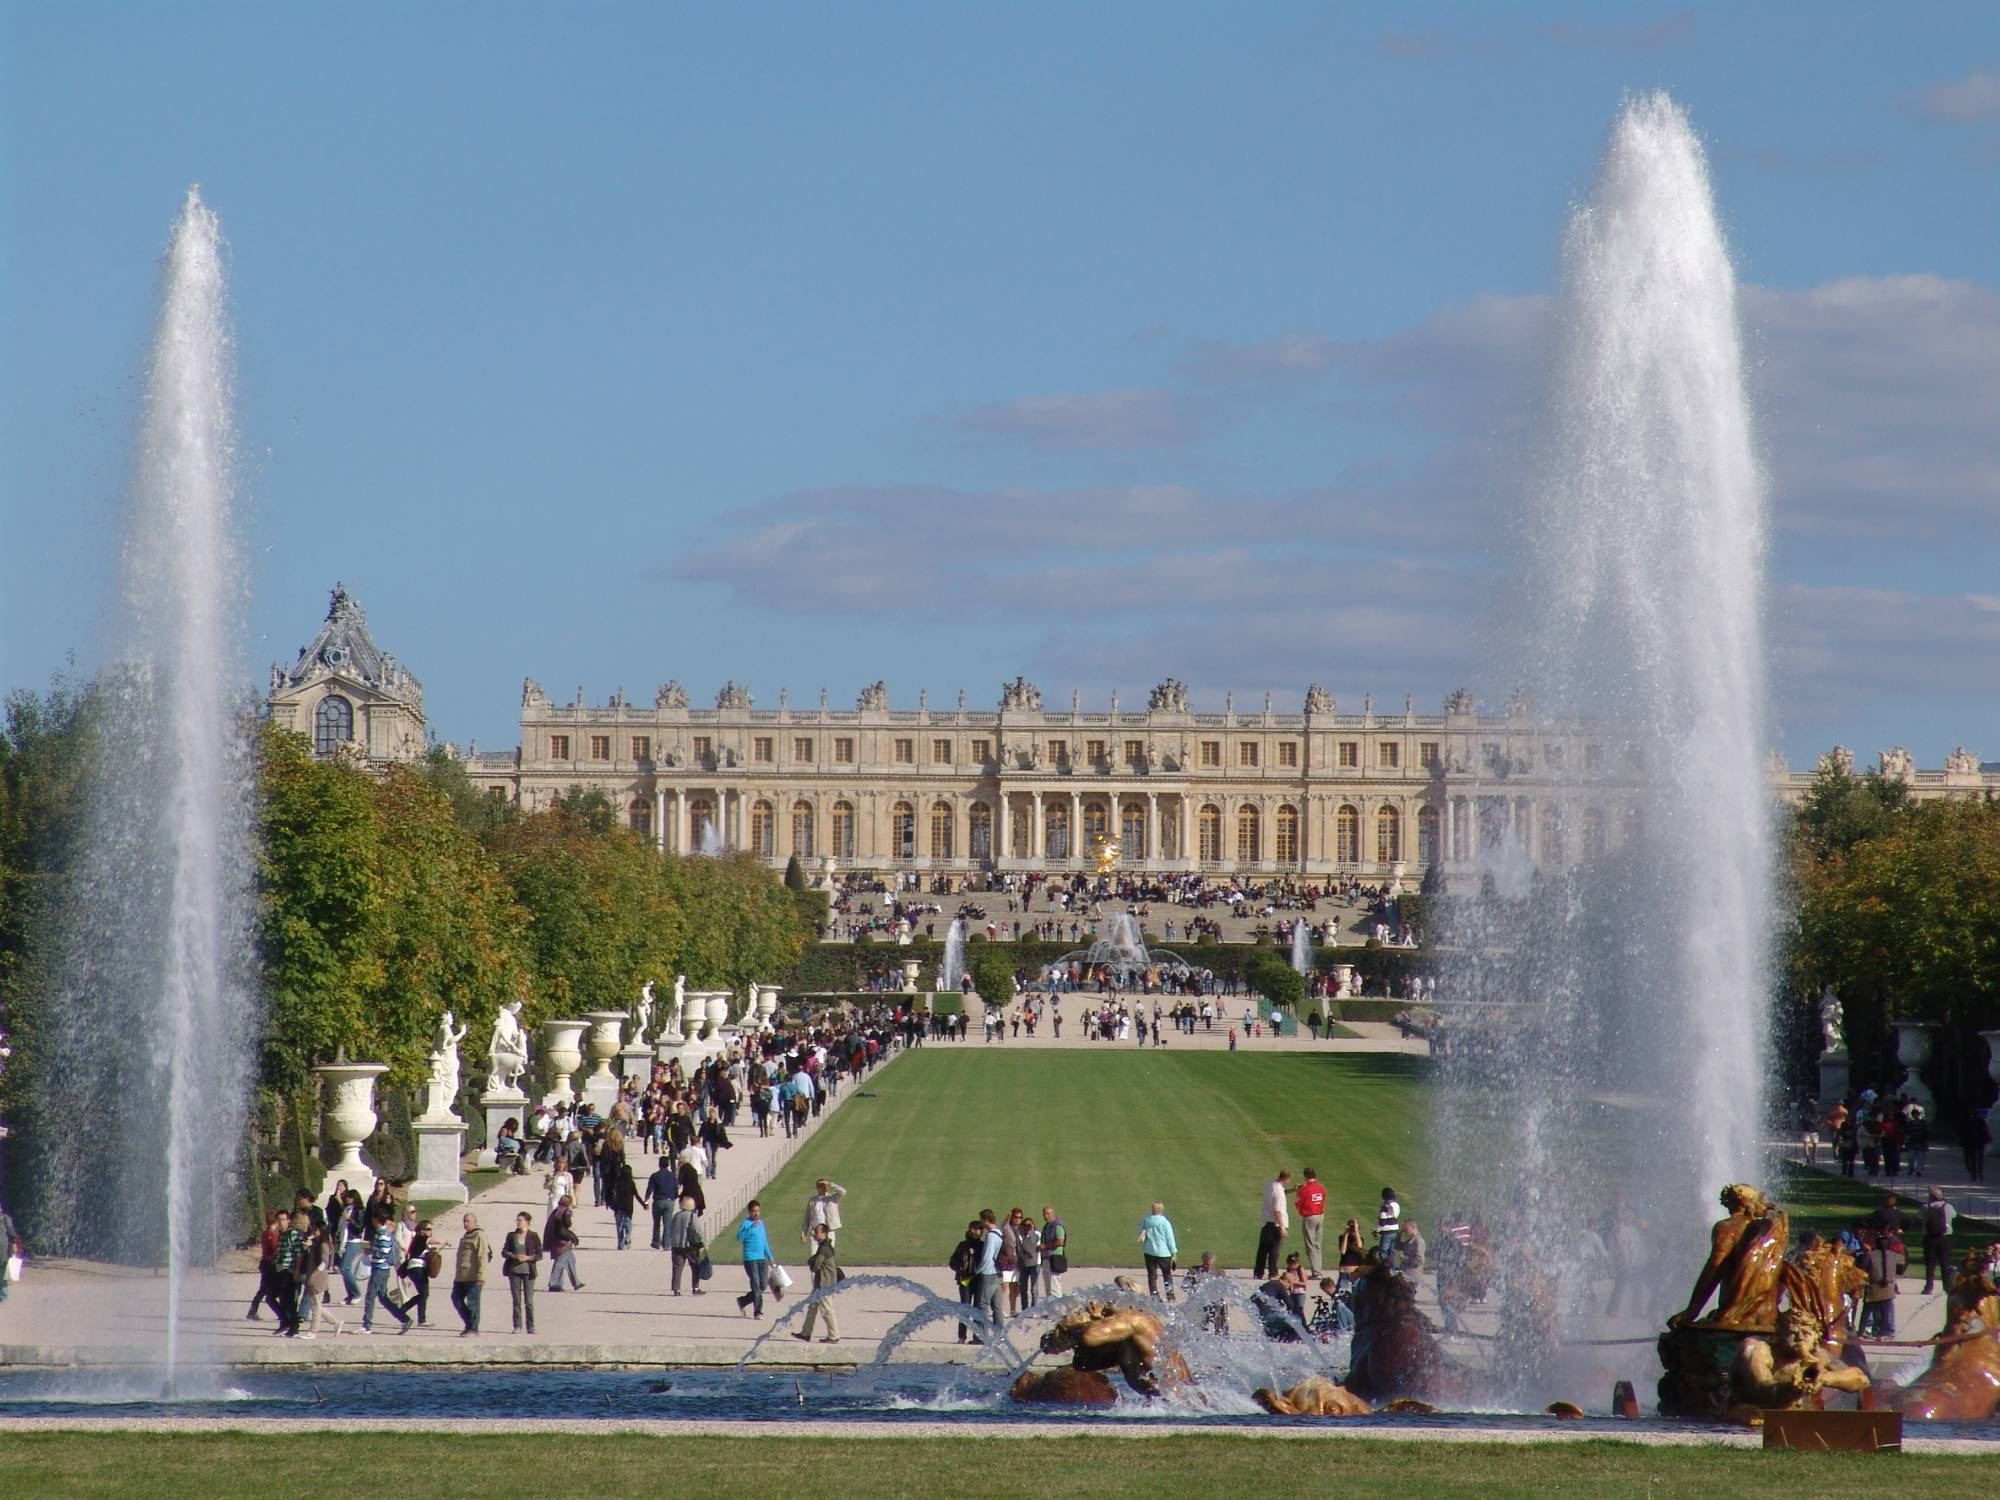 Visit the Palace of Versailles in France | PassPorter.com